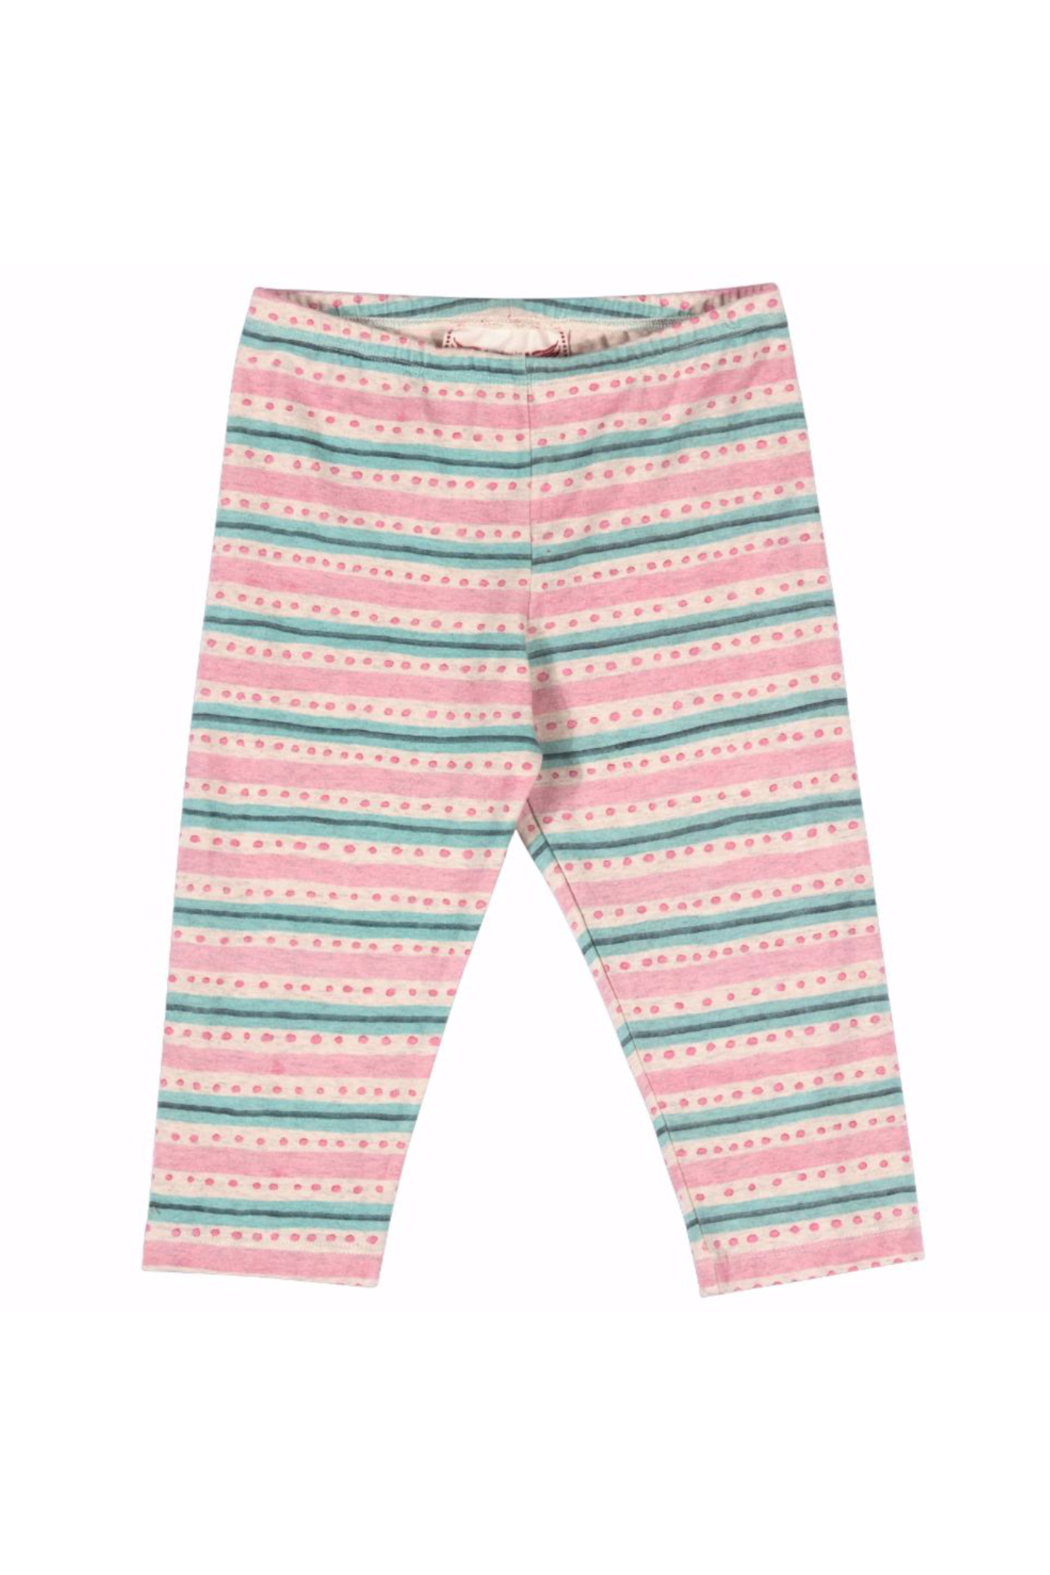 Paper Wings Capri Texta Stripe with Spots Leggings - Main Image